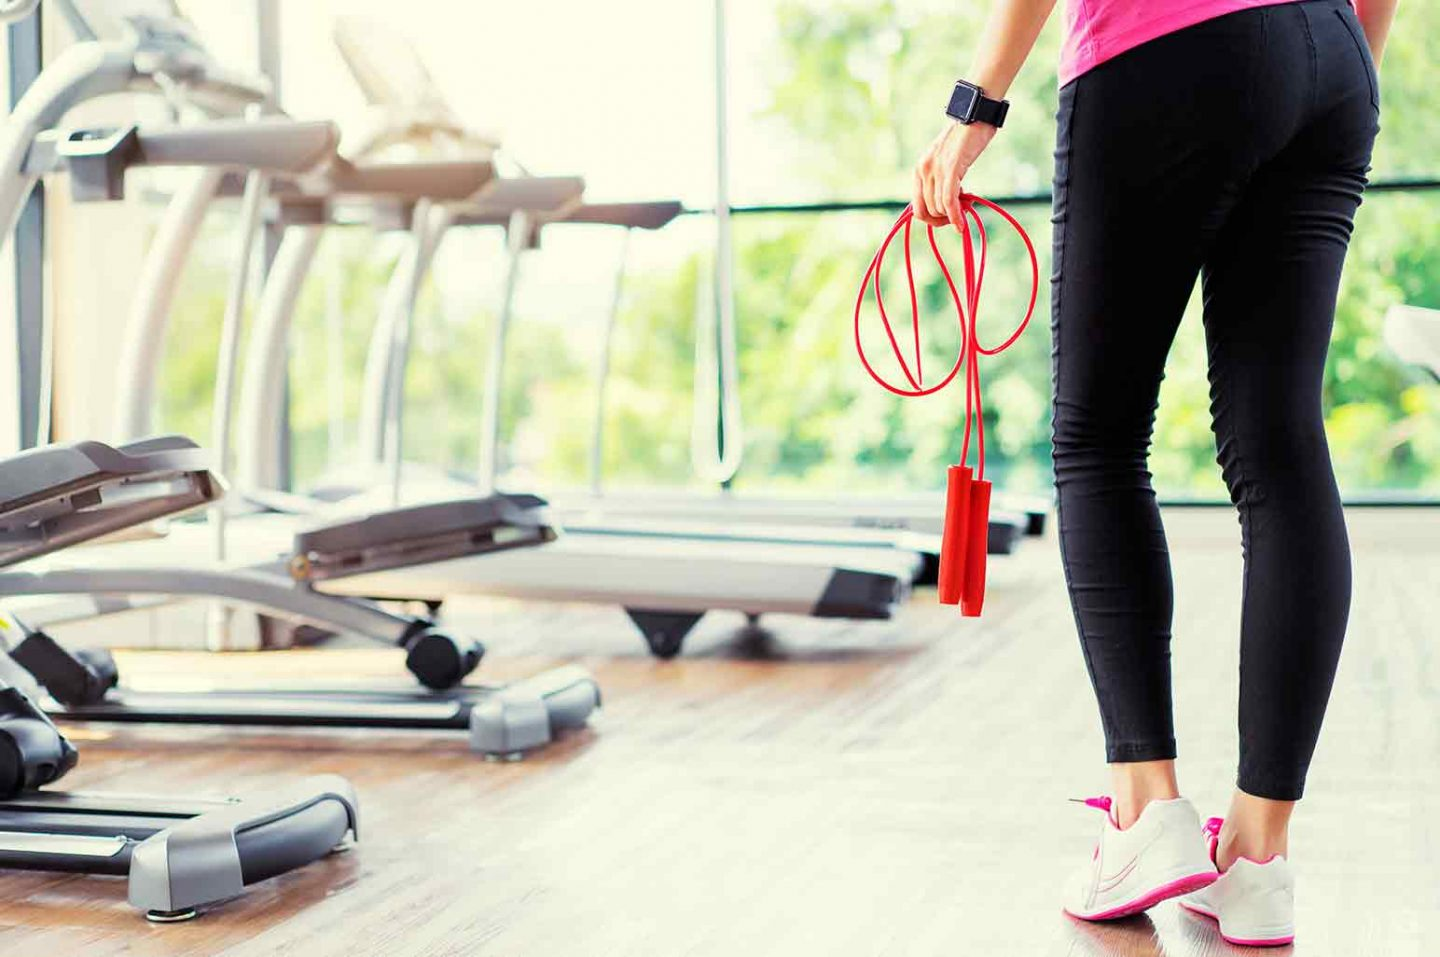 The Most Effective Cardio Exercises